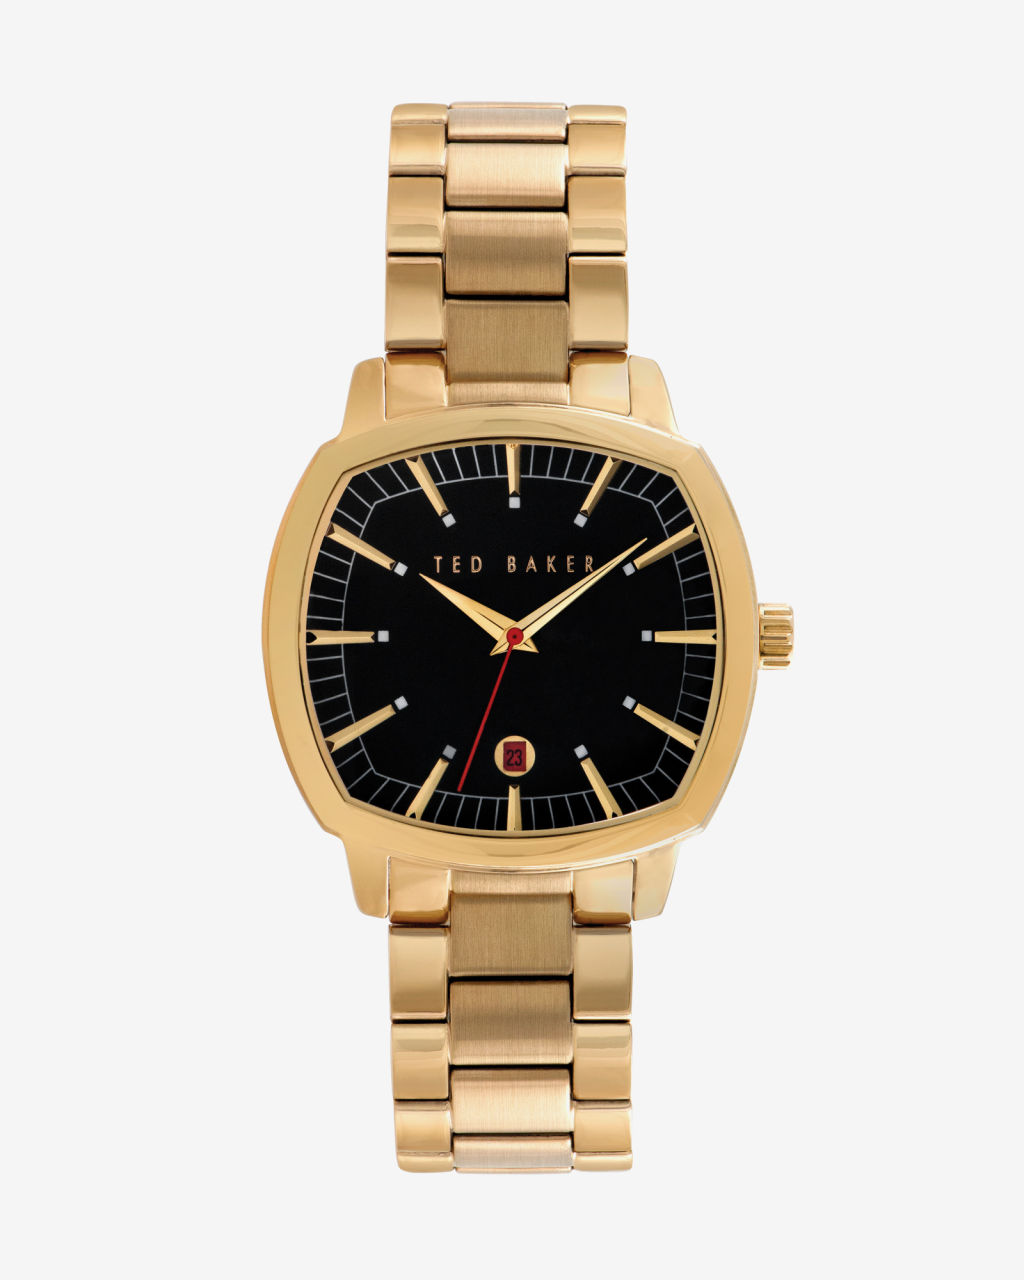 The Ted Baker Watch Collection